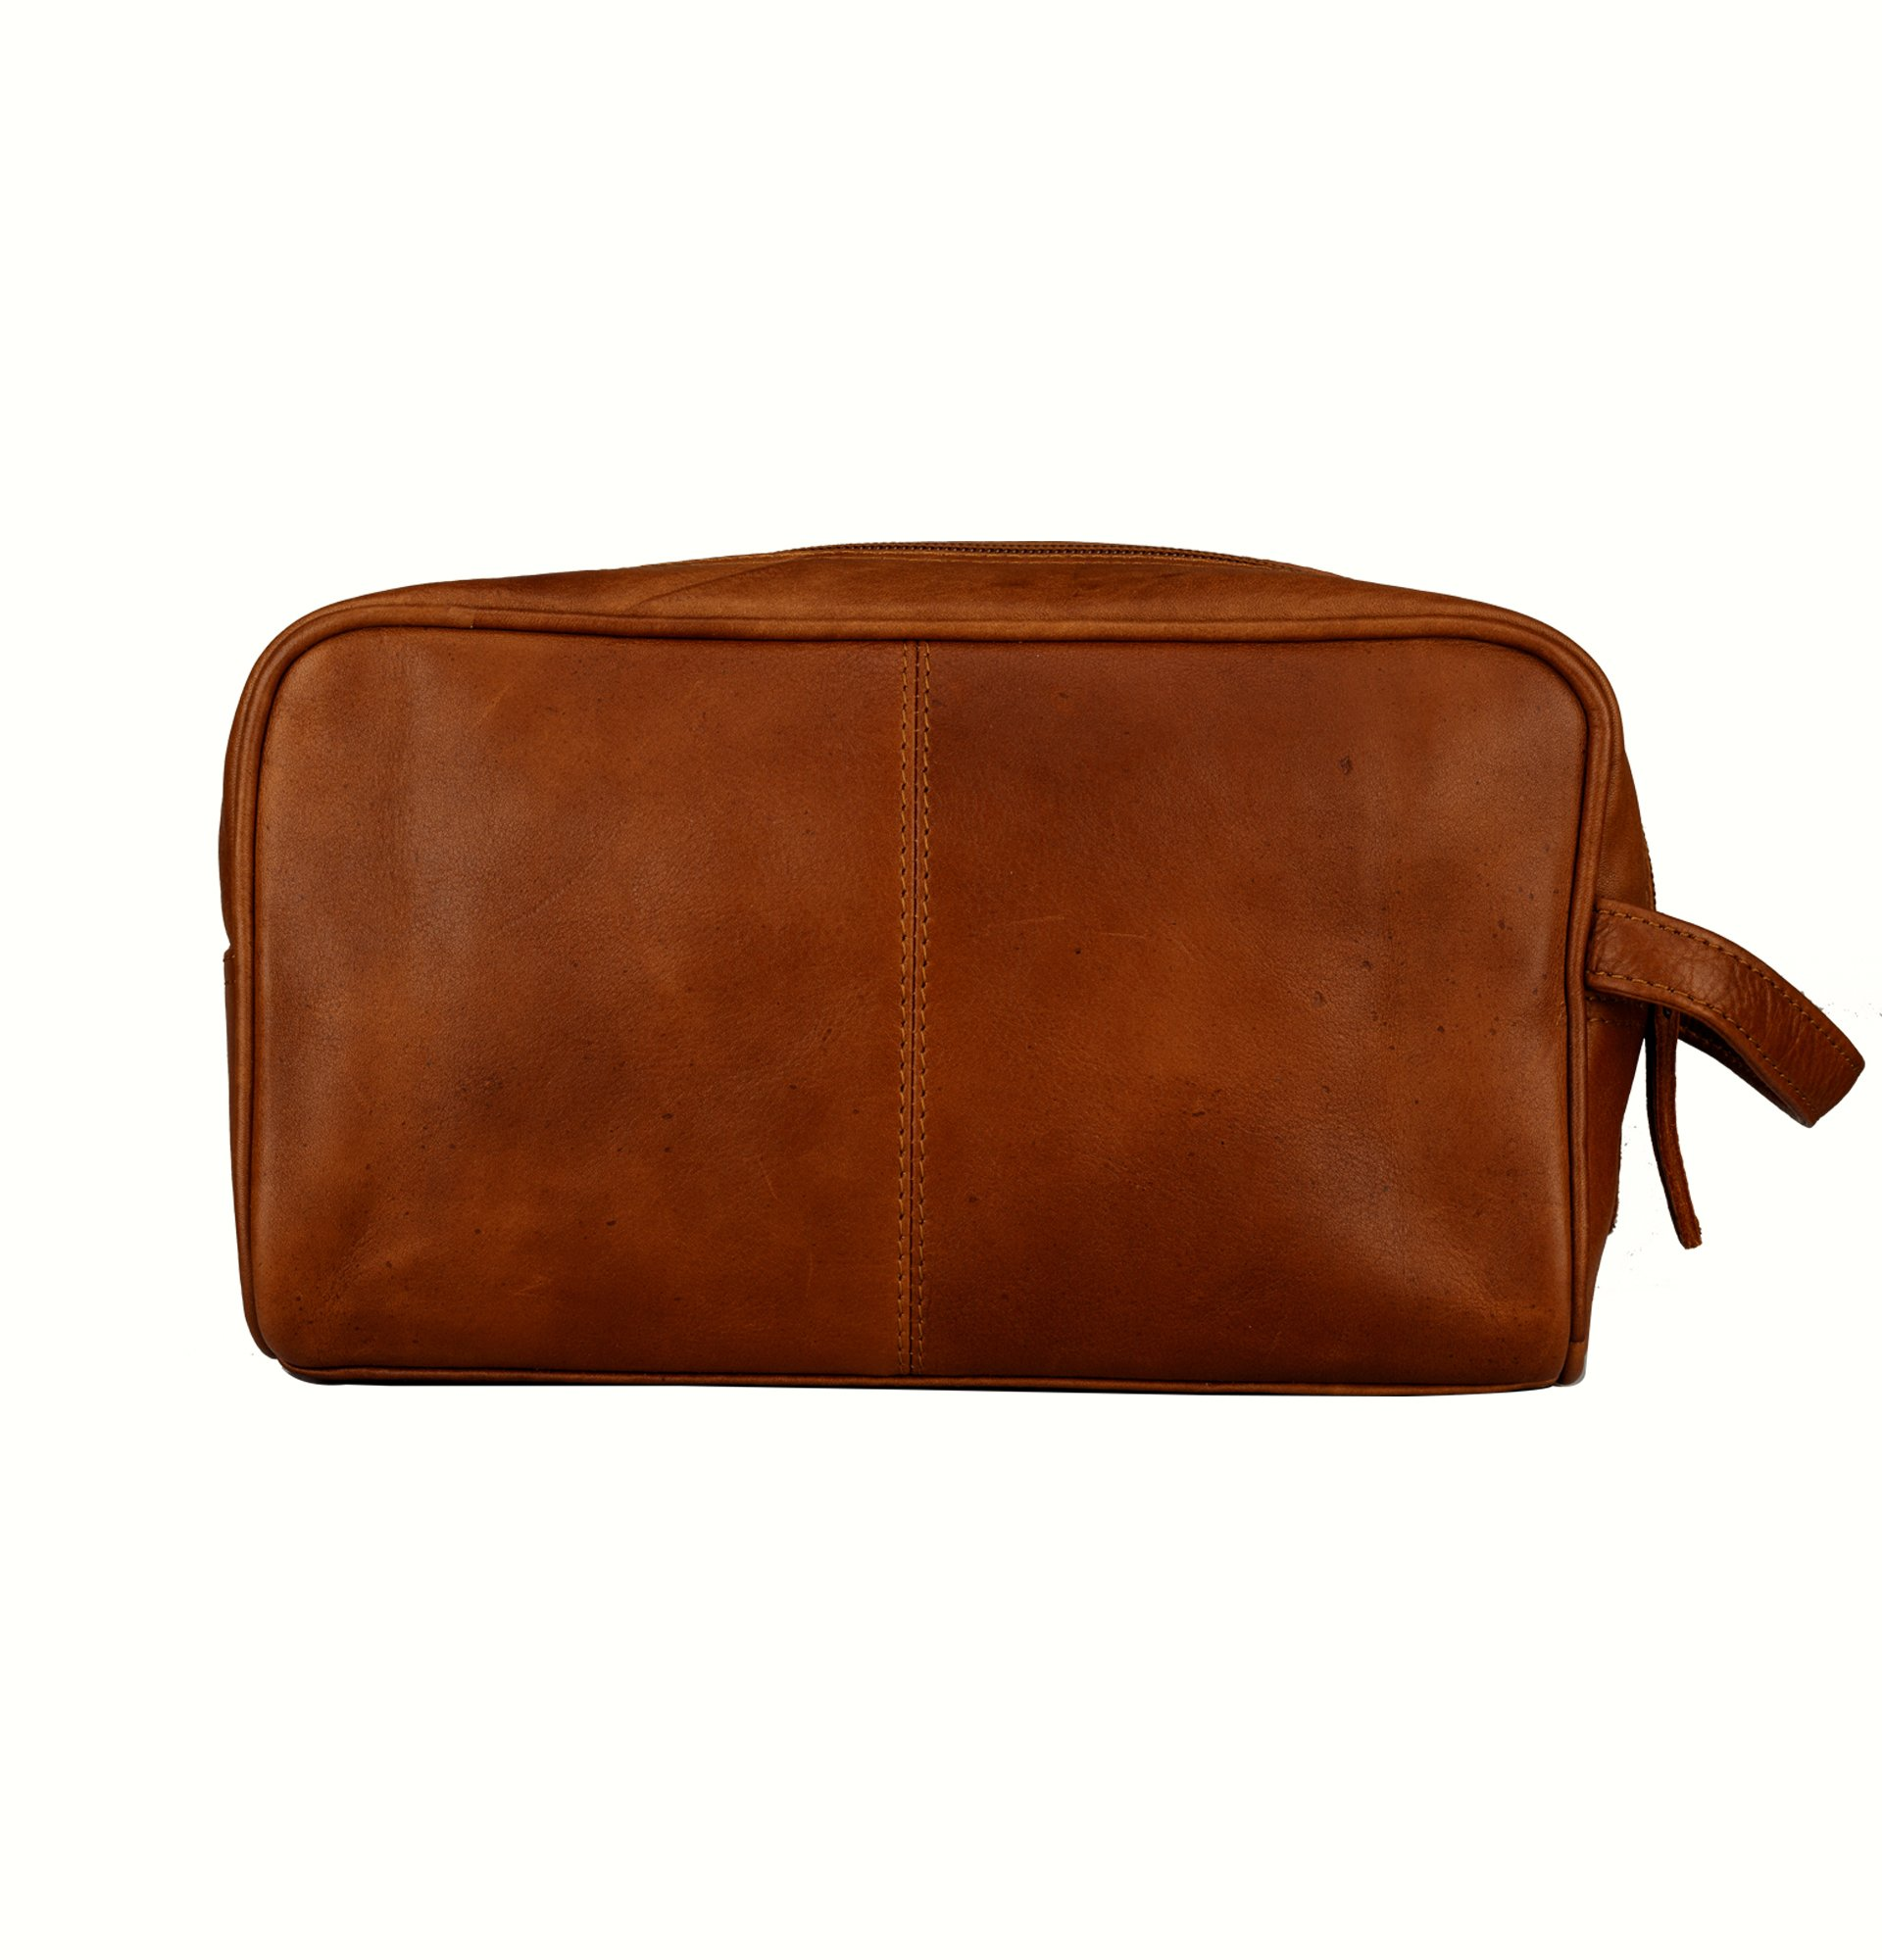 Finelaer Men Brown Leather Toiletry Travel Dopp Bag by FINELAER (Image #4)